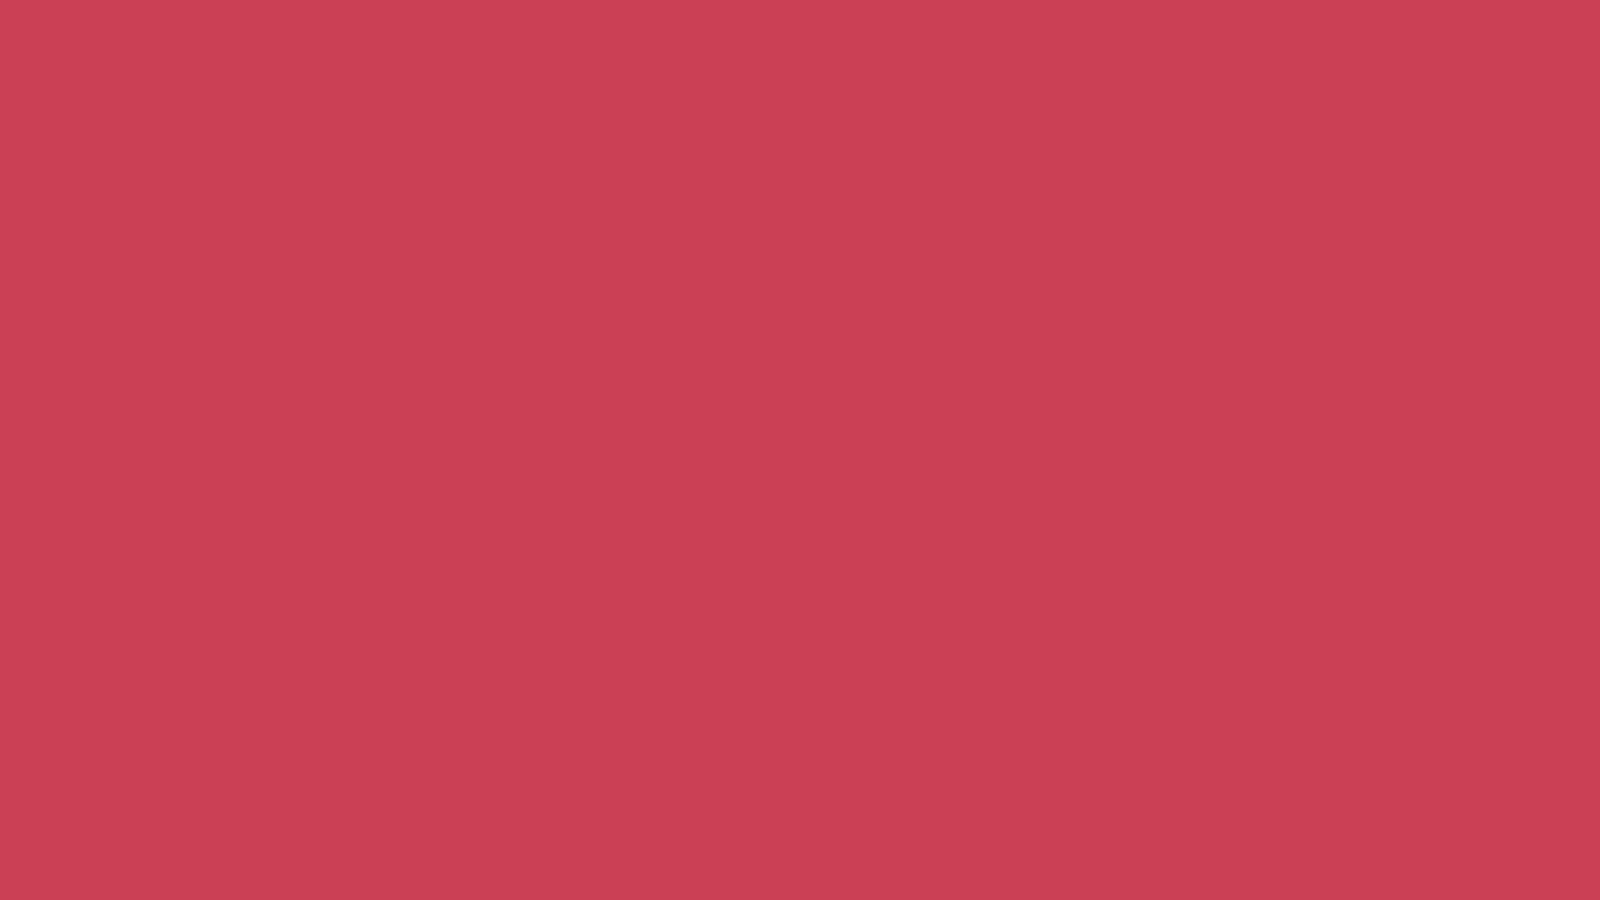 1600x900 Brick Red Solid Color Background